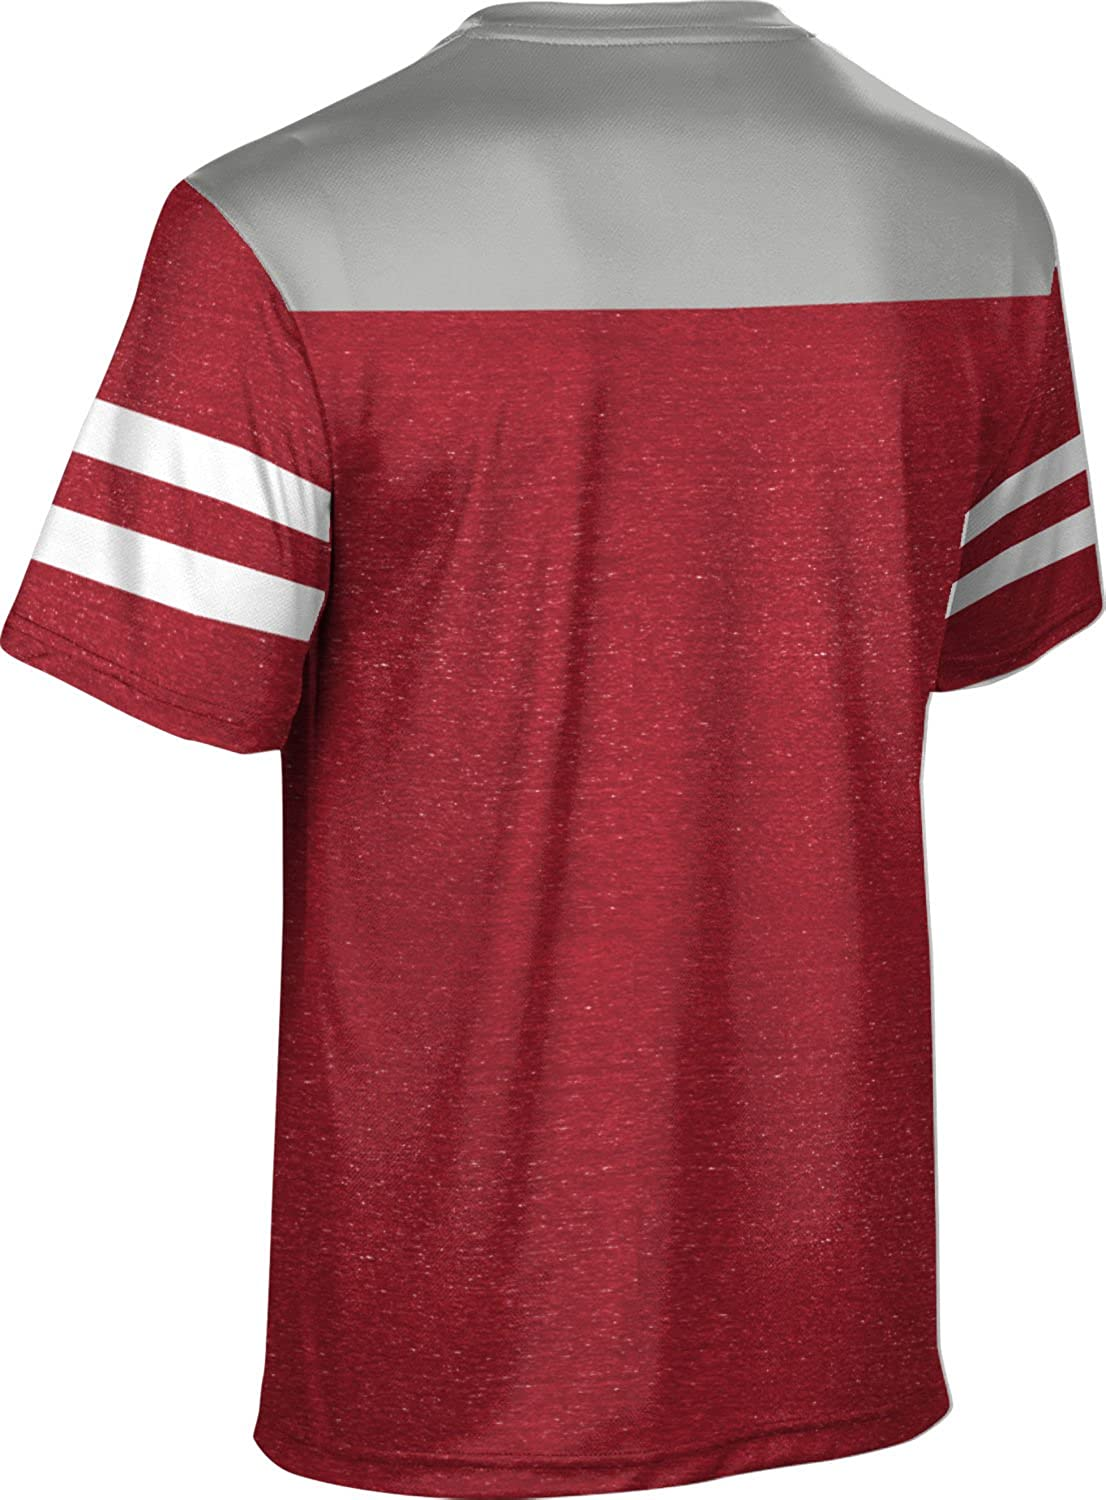 14-16 NCAA Iowa State Cyclones Youth Boys  Short Sleeve Performance Tee Youth Boys Large Dark Red